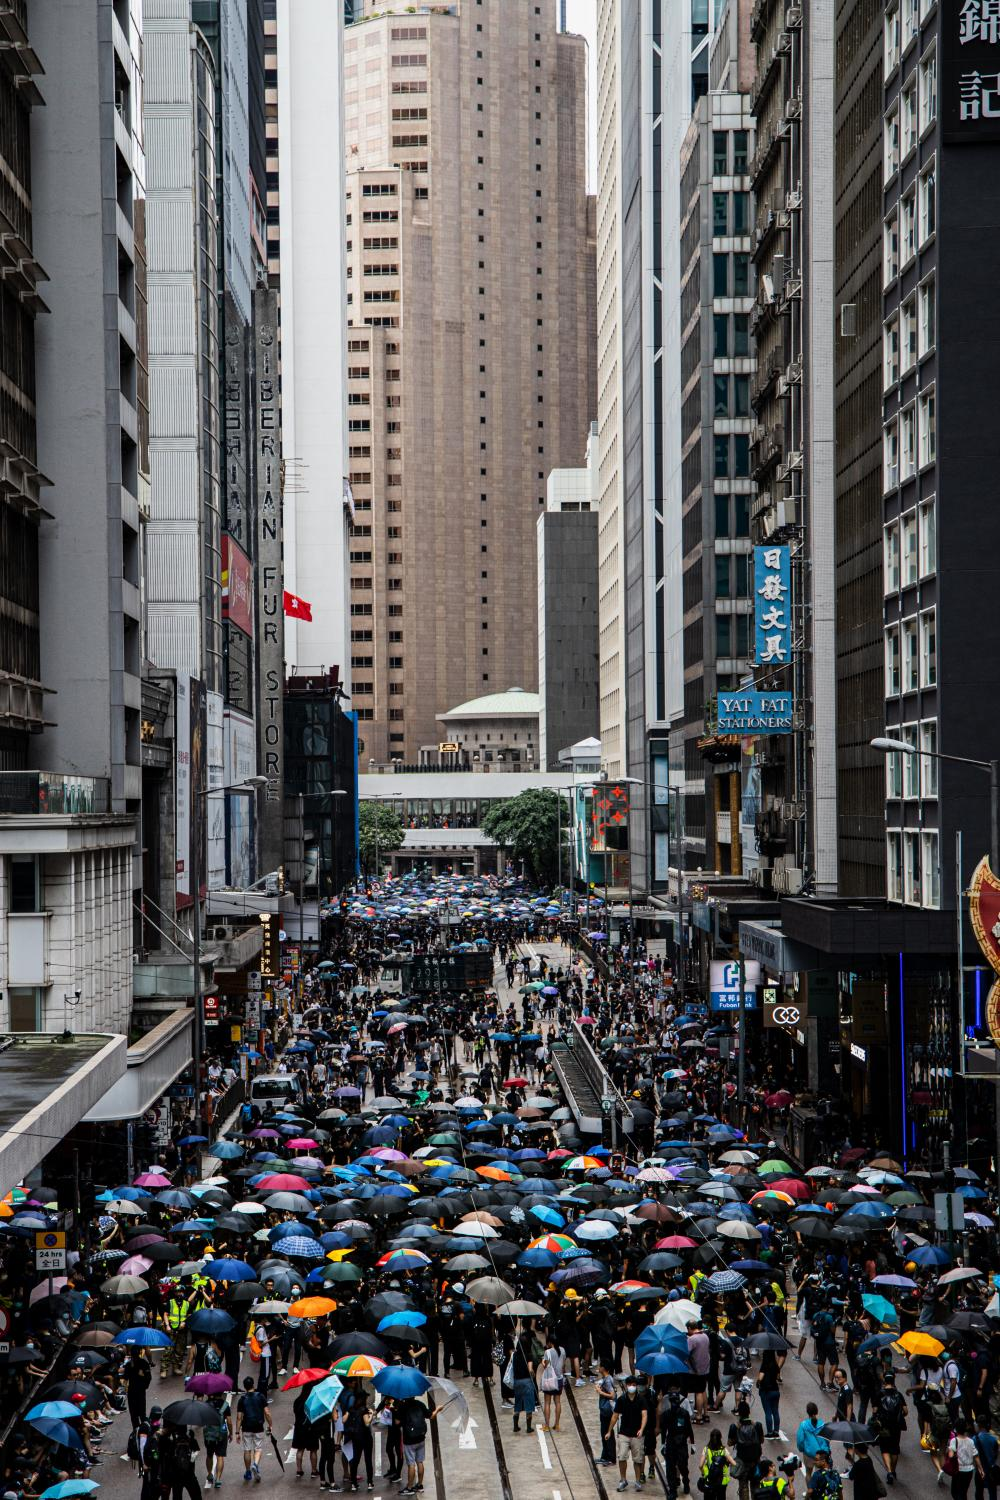 Following the arrests of Hong Kong activists, including Agnes Chow and Joshua Wong, and a police ban on a protest organised by the Civil Human Rights Front, on August 31th, hundreds of thousands of protesters decided to defy the ban and joined a Christian march in Wan Chai, and others occupied major roads in Causeway Bay.